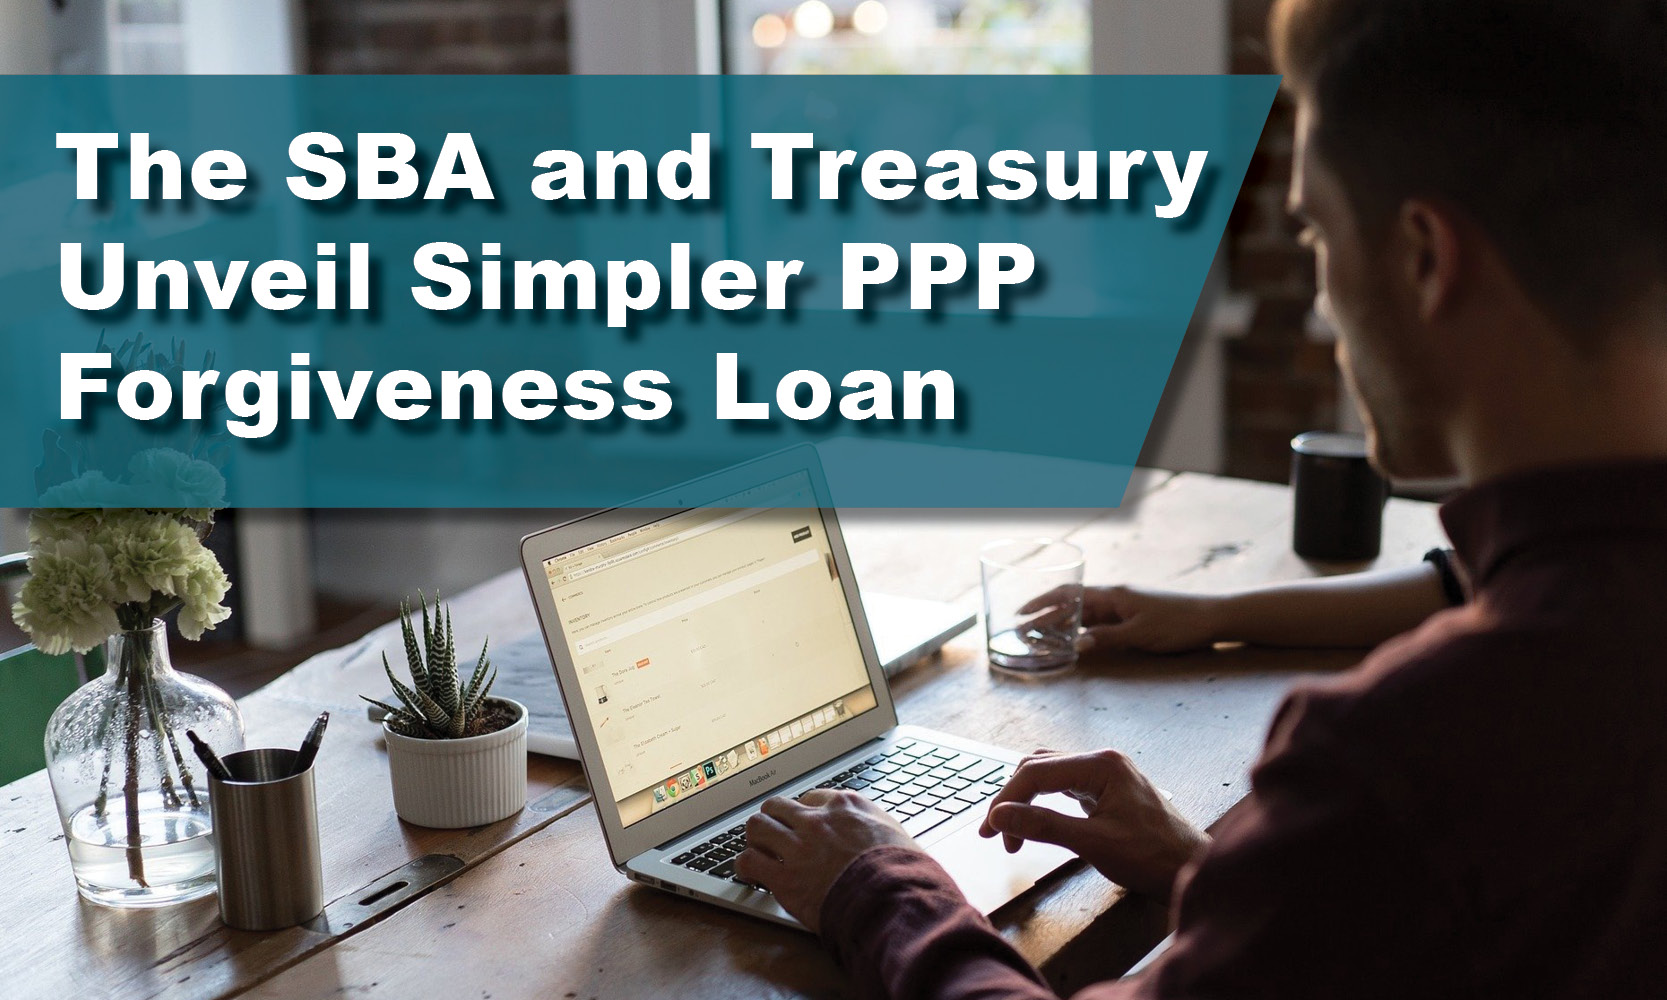 The SBA and Treasury Unveil Simpler PPP Forgiveness on Loan